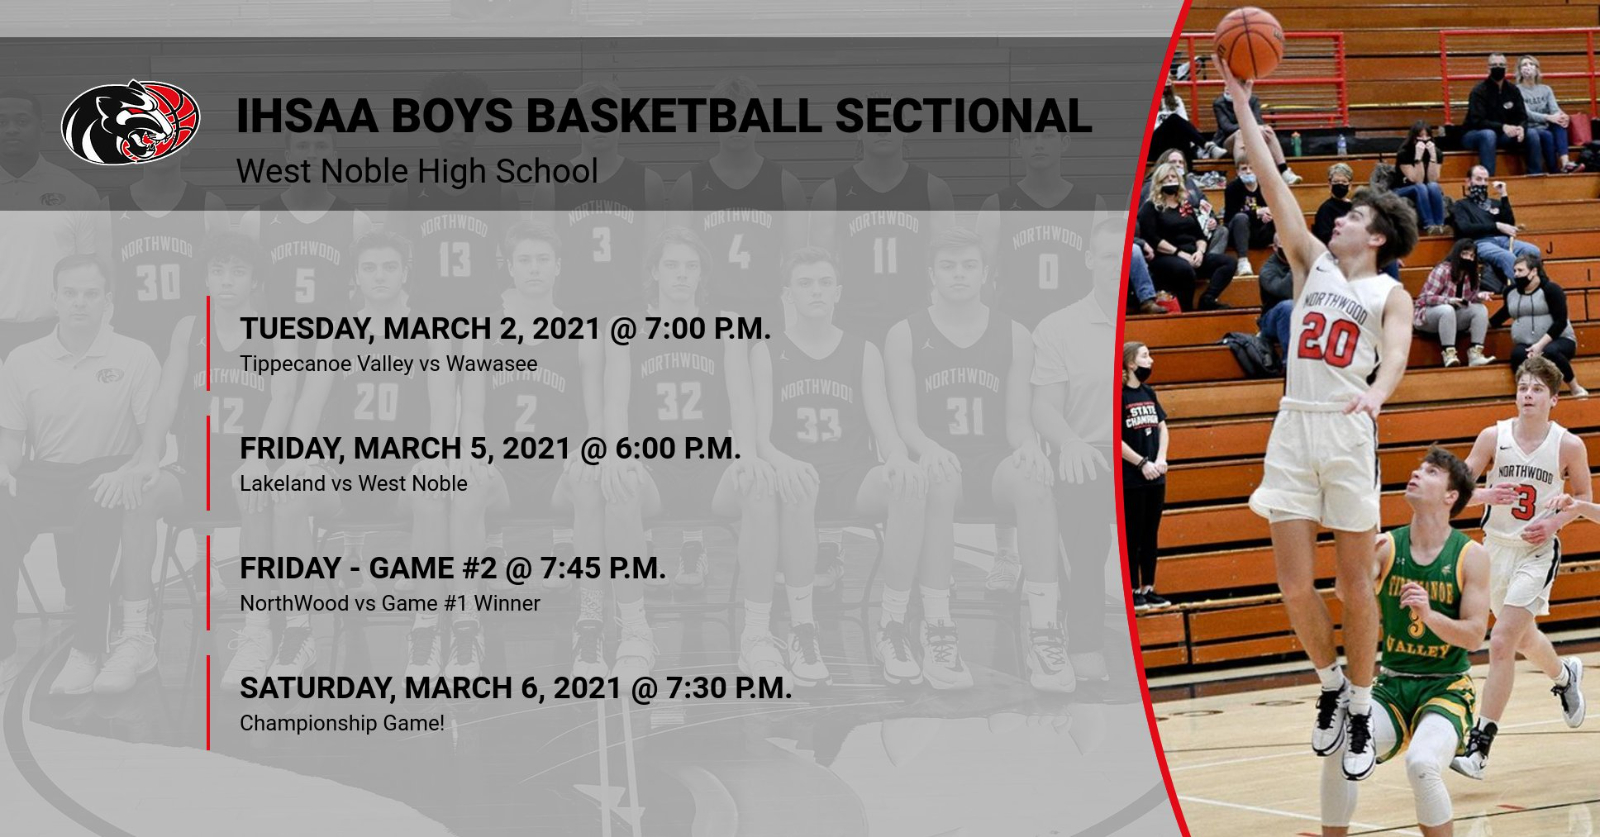 IHSAA West Noble Boys Basketball Sectional Information